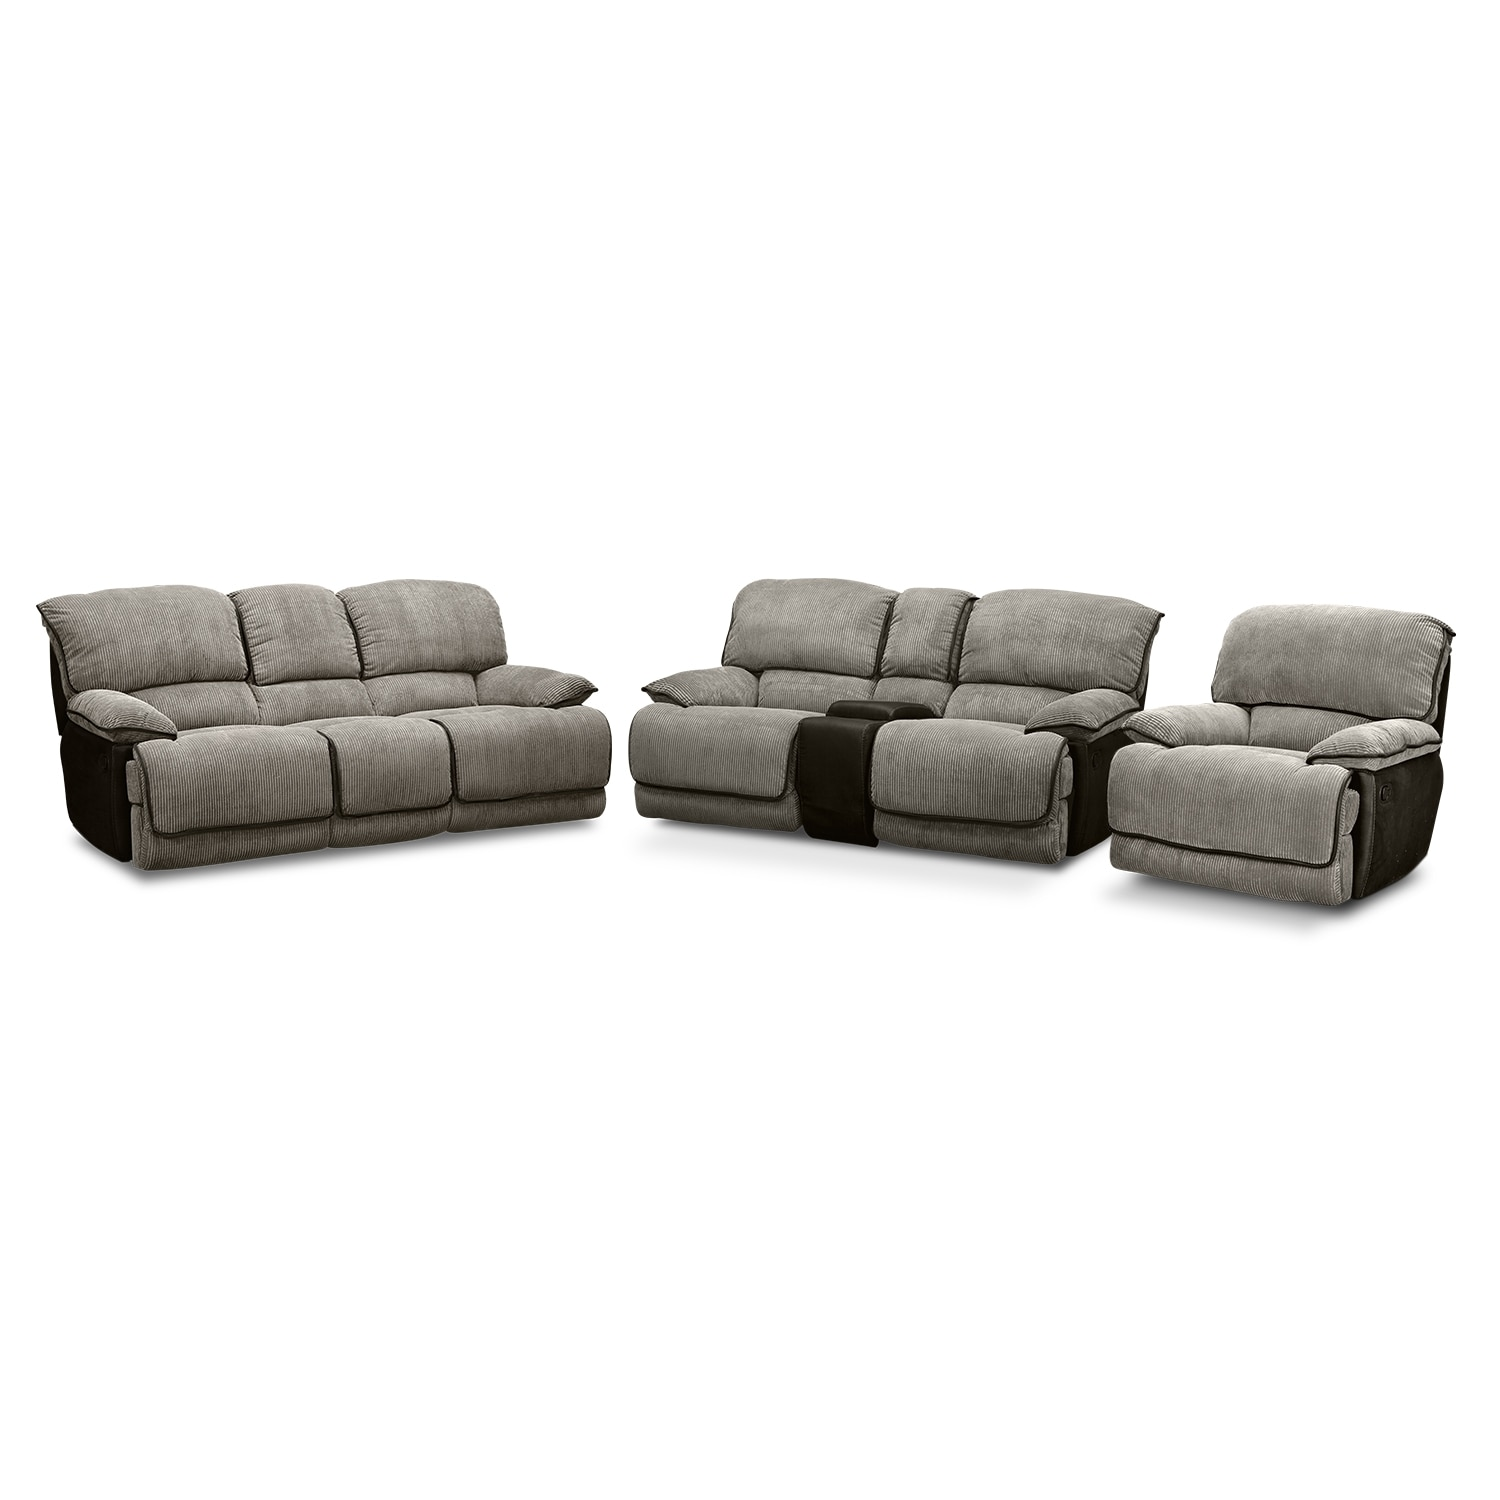 Laguna Reclining Sofa, Gliding Reclining Loveseat and Glider Recliner Set - Steel